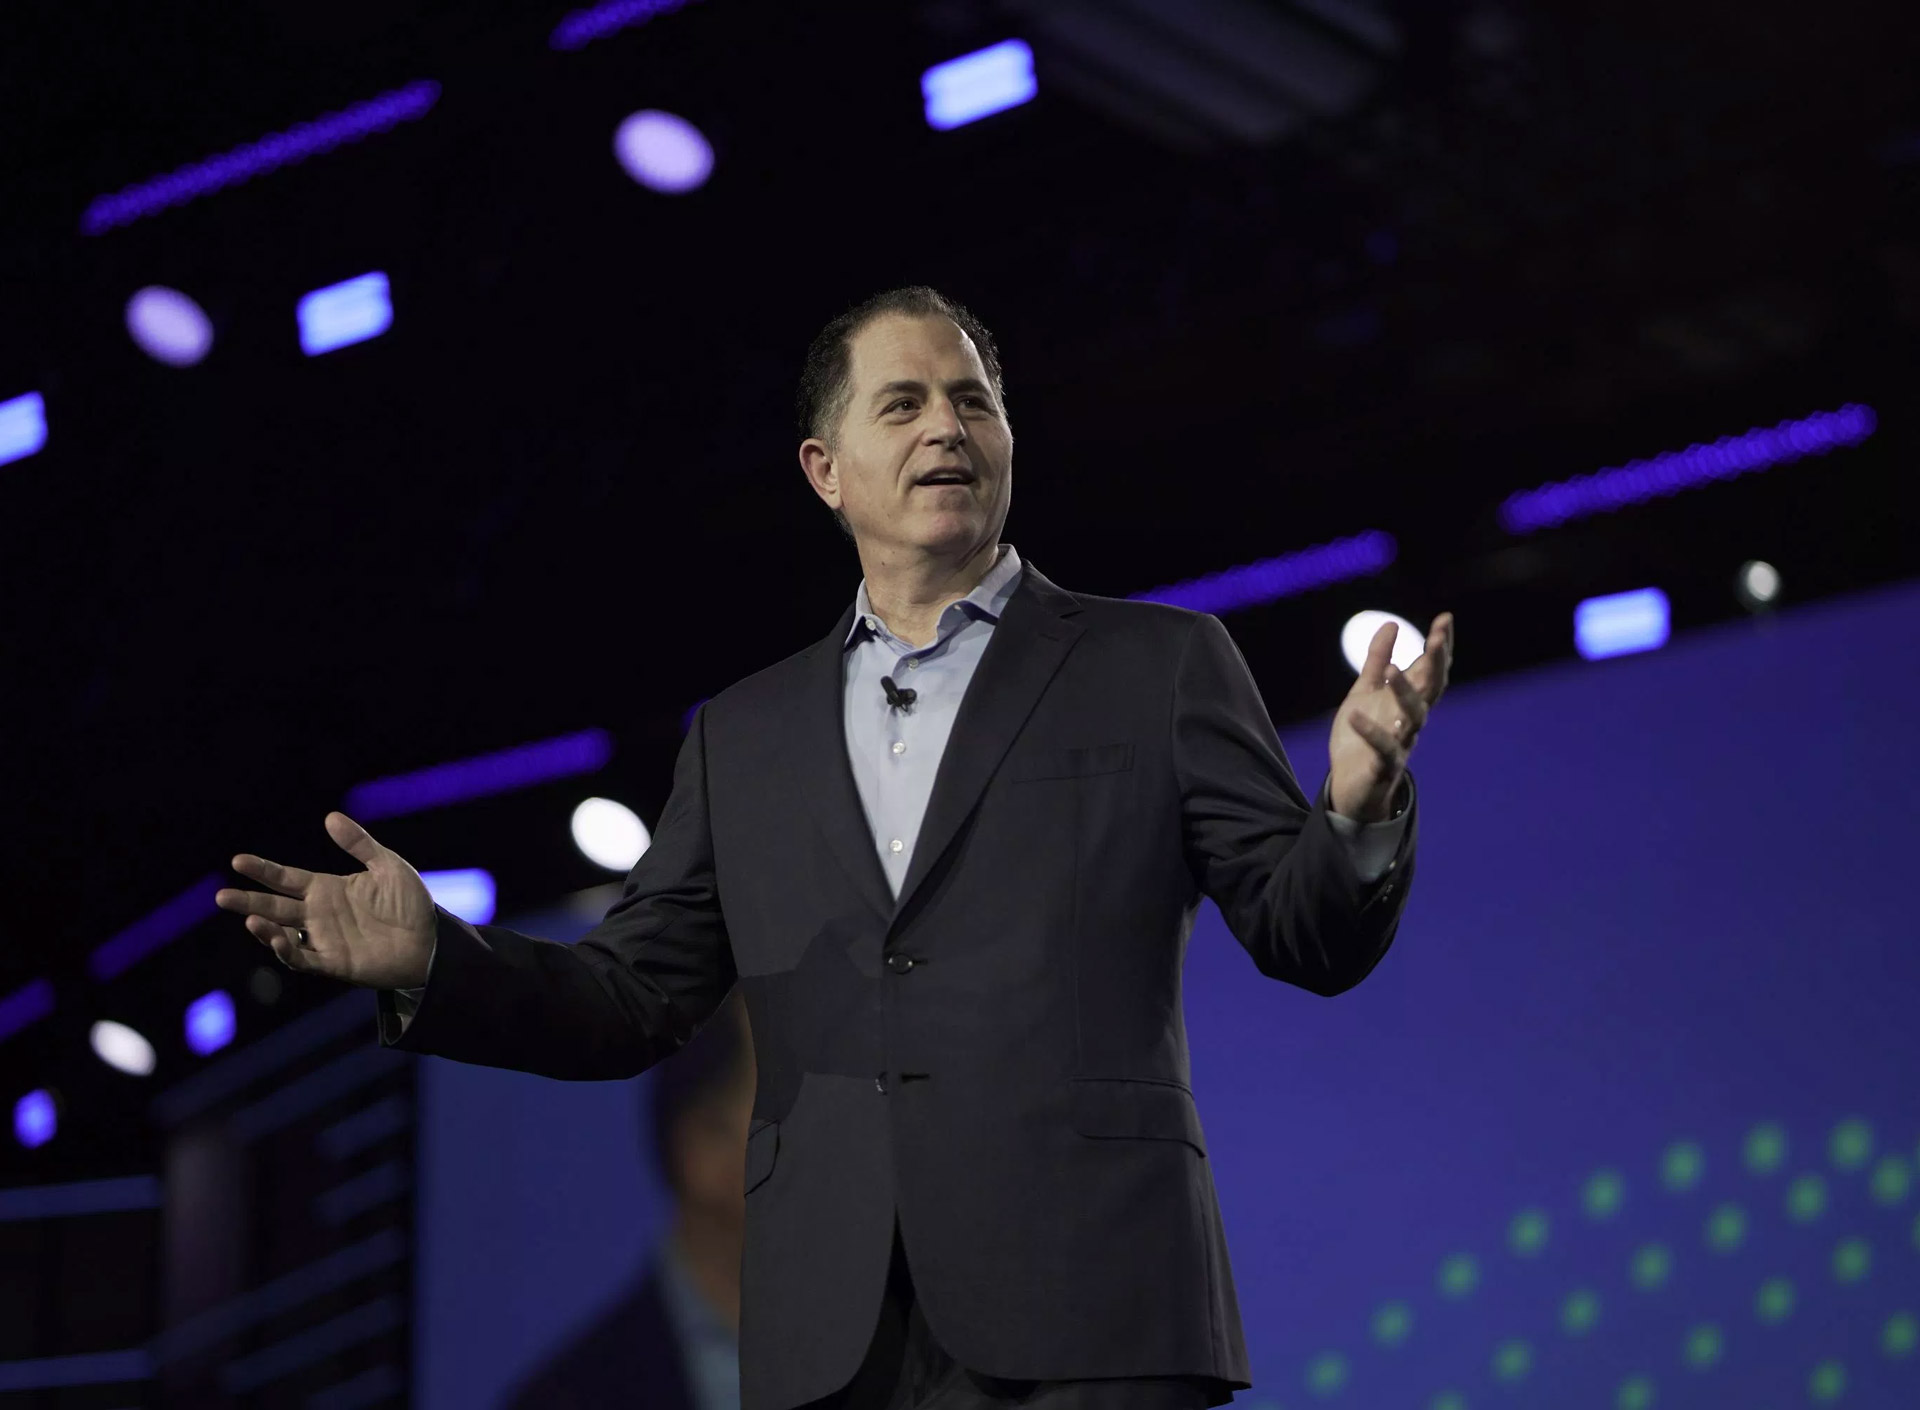 Ten things we learnt at Dell Technologies World 2019